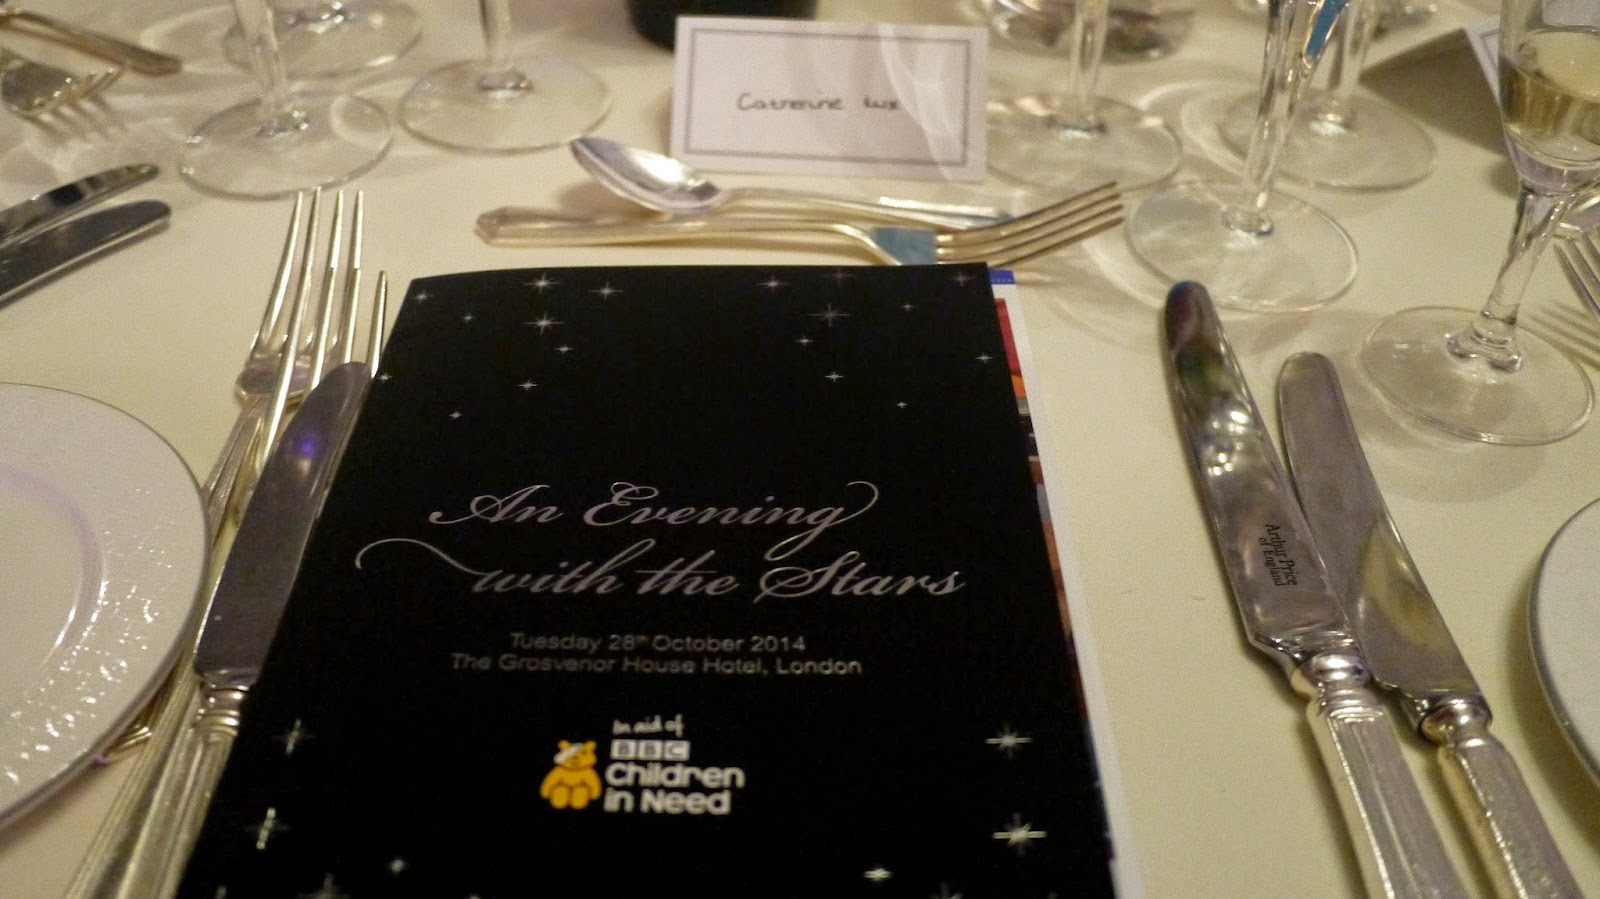 Children in Need An Evening with the Stars gala dinner